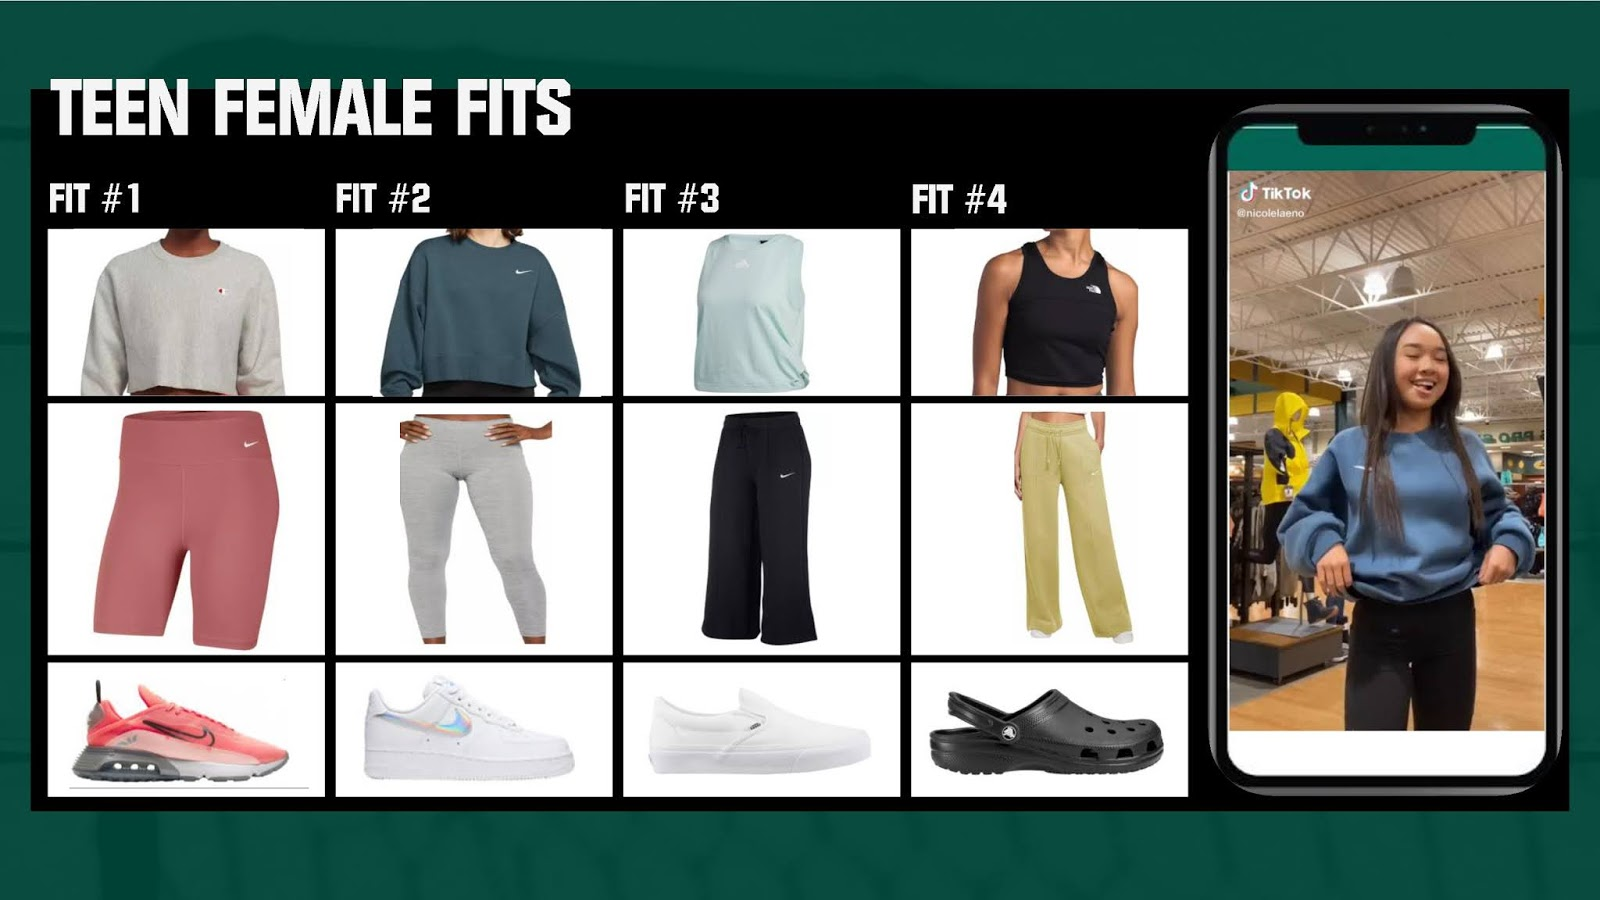 Teen Female Fits from DICK'S Sporting Goods